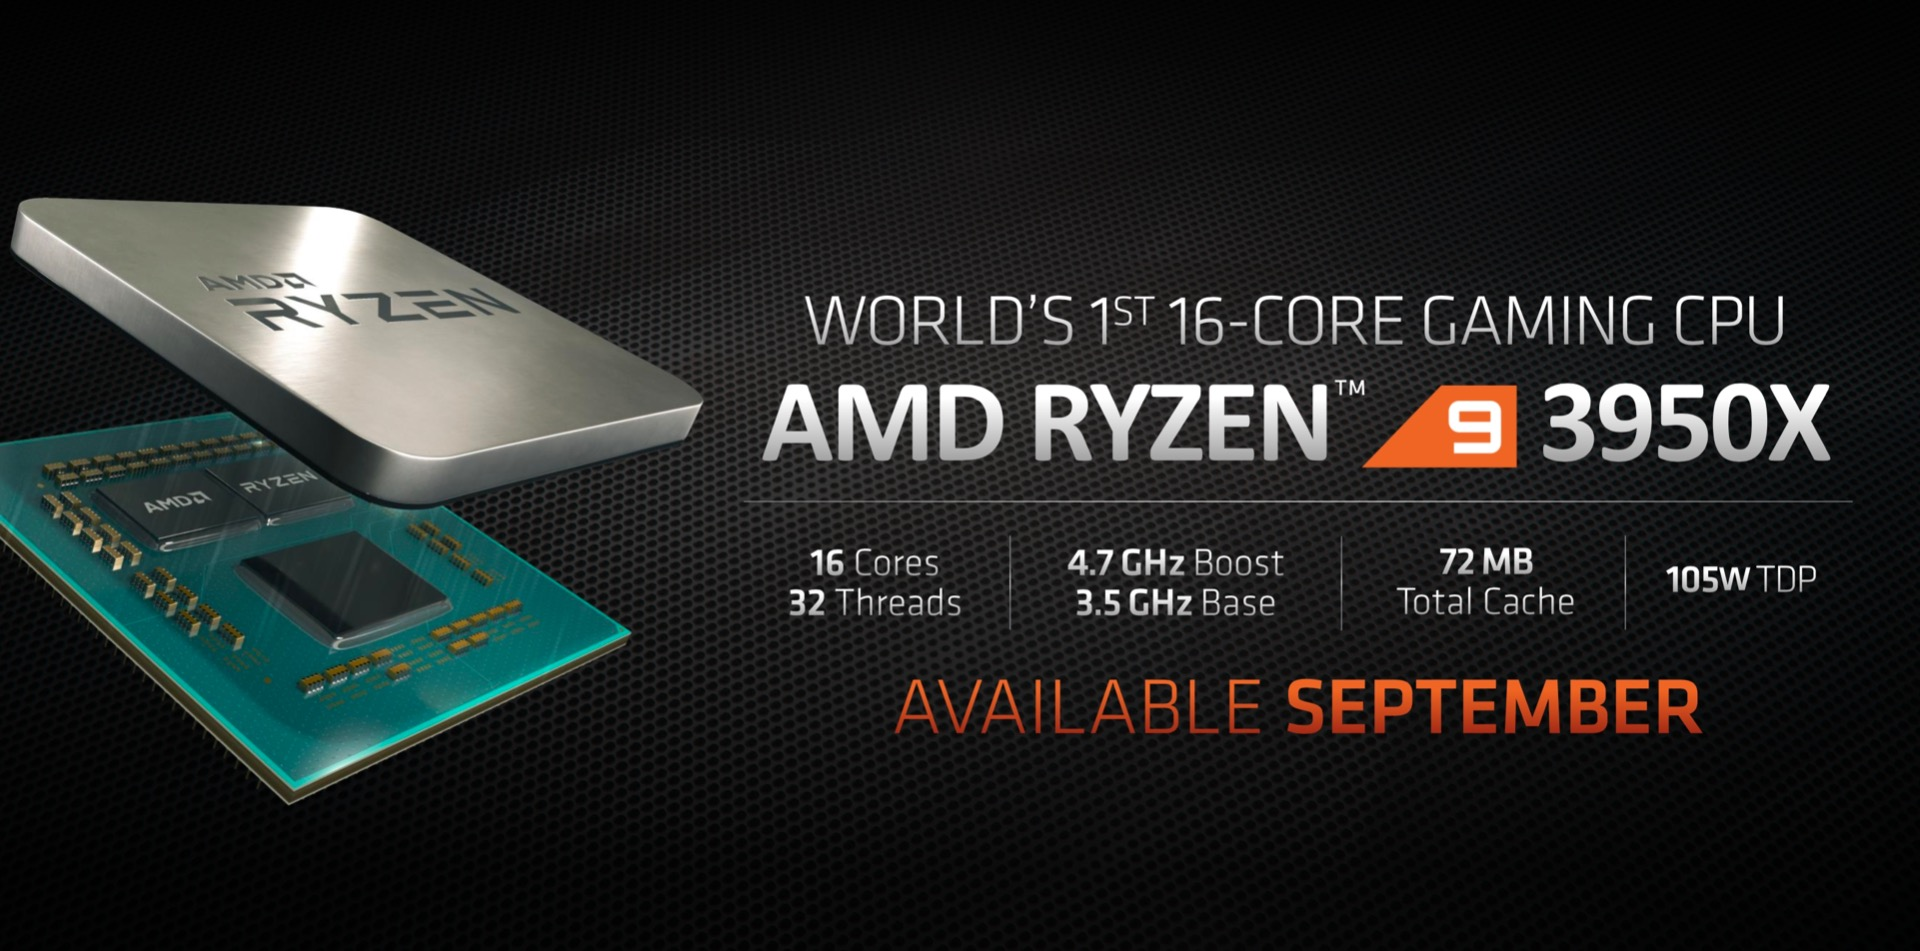 AMD Ryzen 9 3950X Drops 16-Core, 32-Thread Zen 2 Bombshell On PC Gaming Market